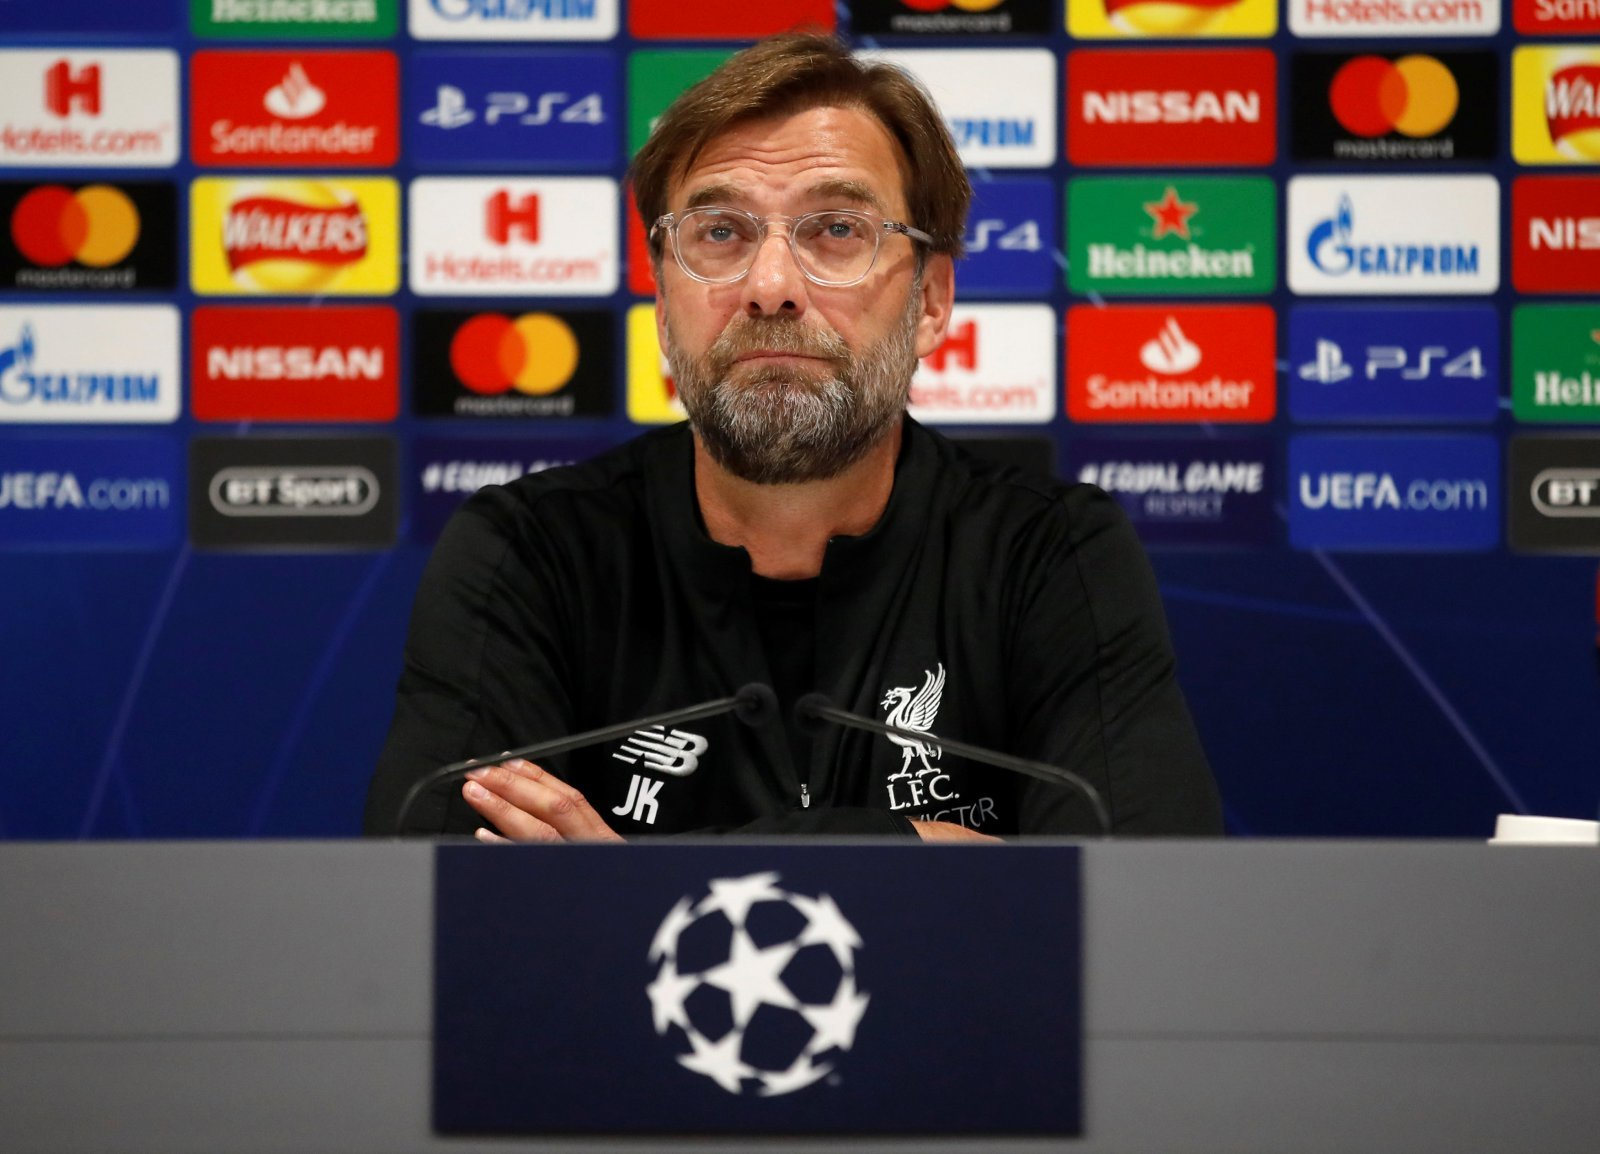 Liverpool: Fans react philosophically to Jurgen Klopp's retirement hint